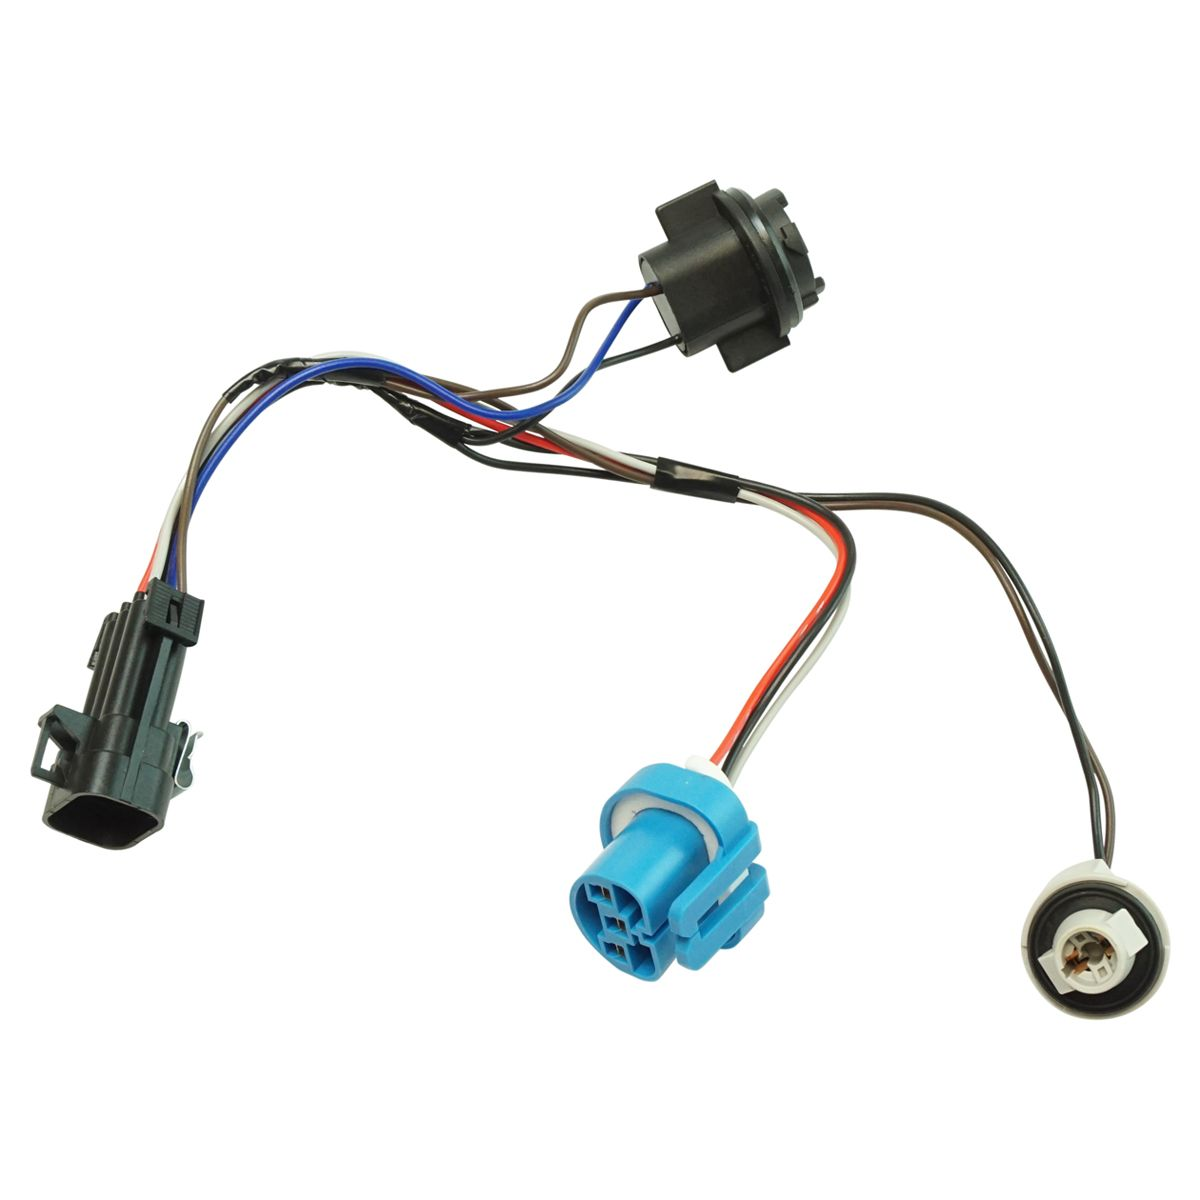 cobalt wiring harness dorman headlight wiring harness or side for chevy cobalt pontiac  dorman headlight wiring harness or side